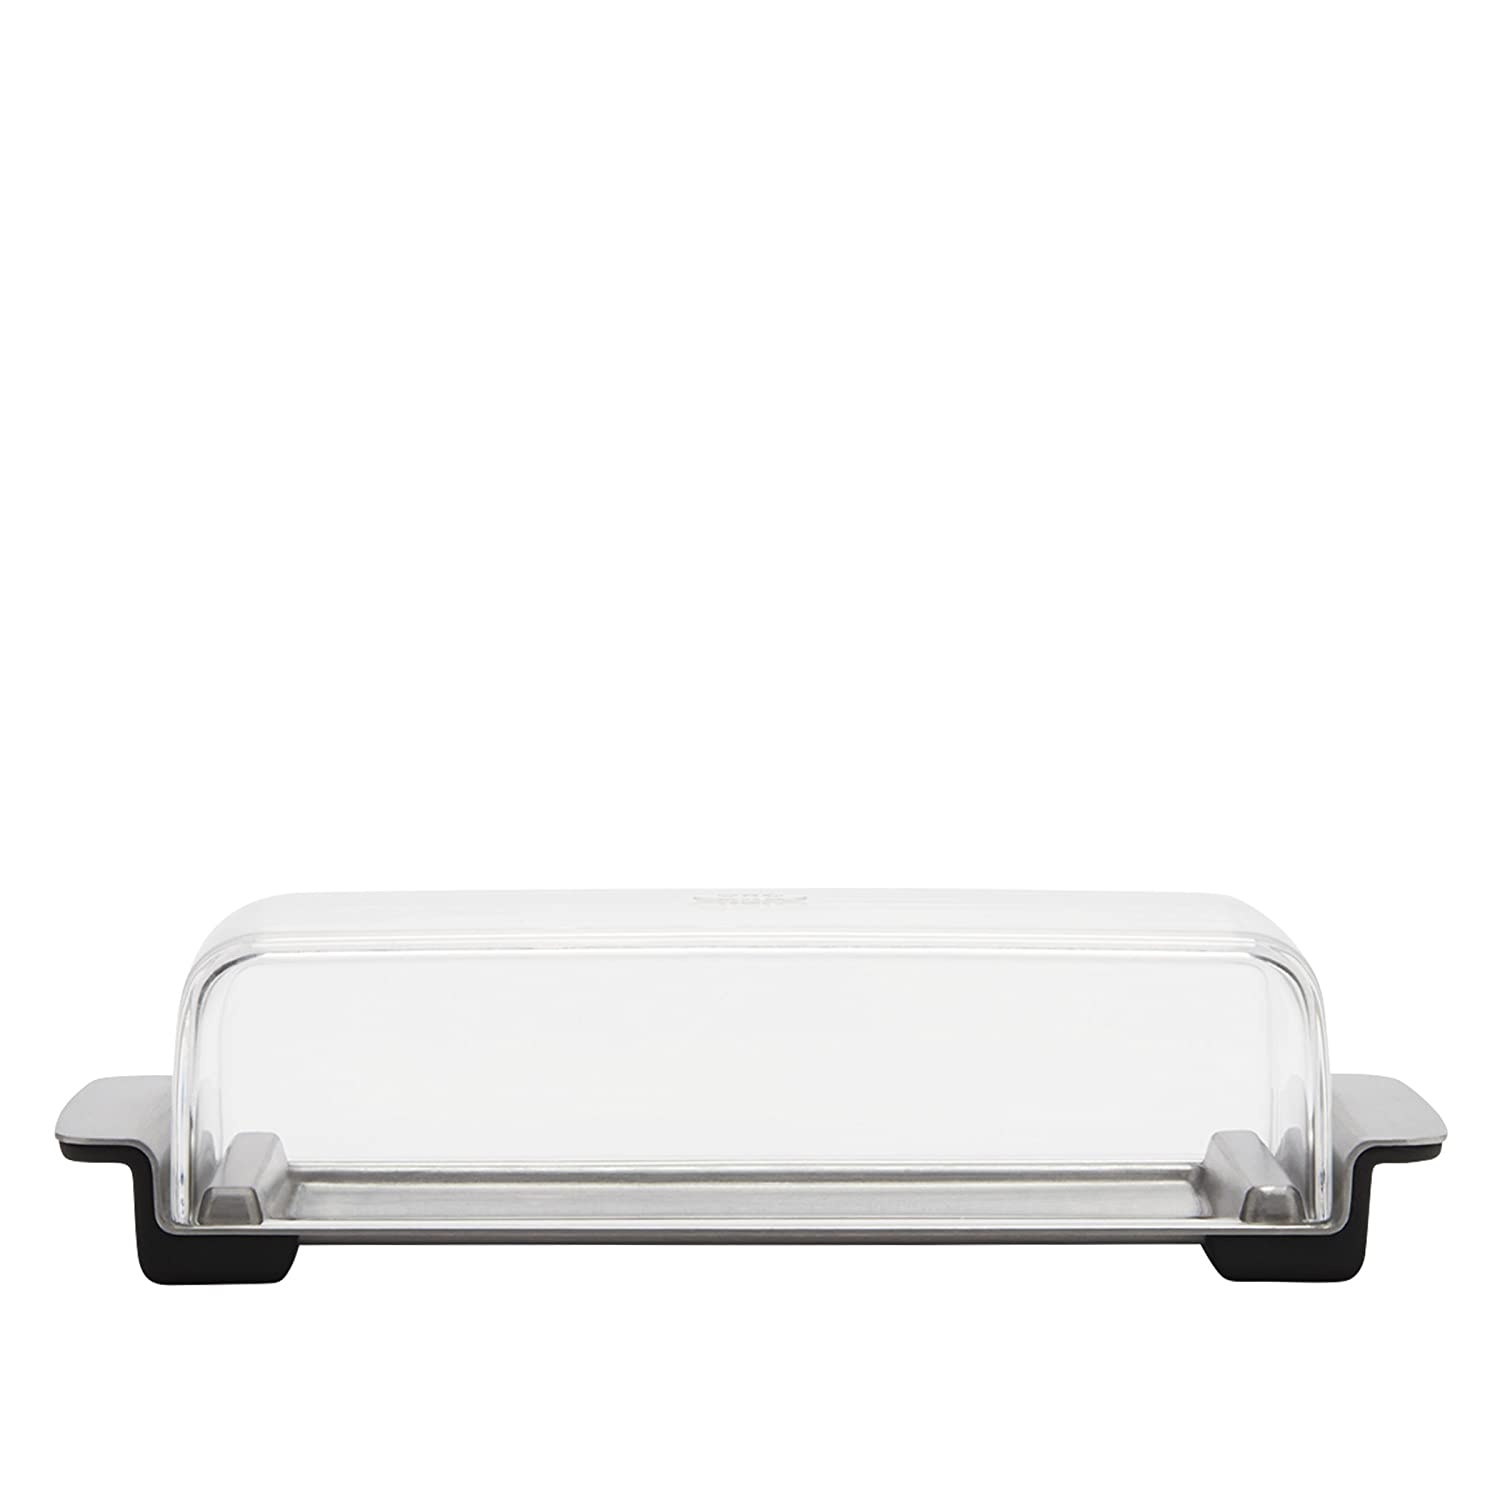 OXO Good Grips Butter Dish, Stainless Steel/Clear OXO Cook's Tools 11122400